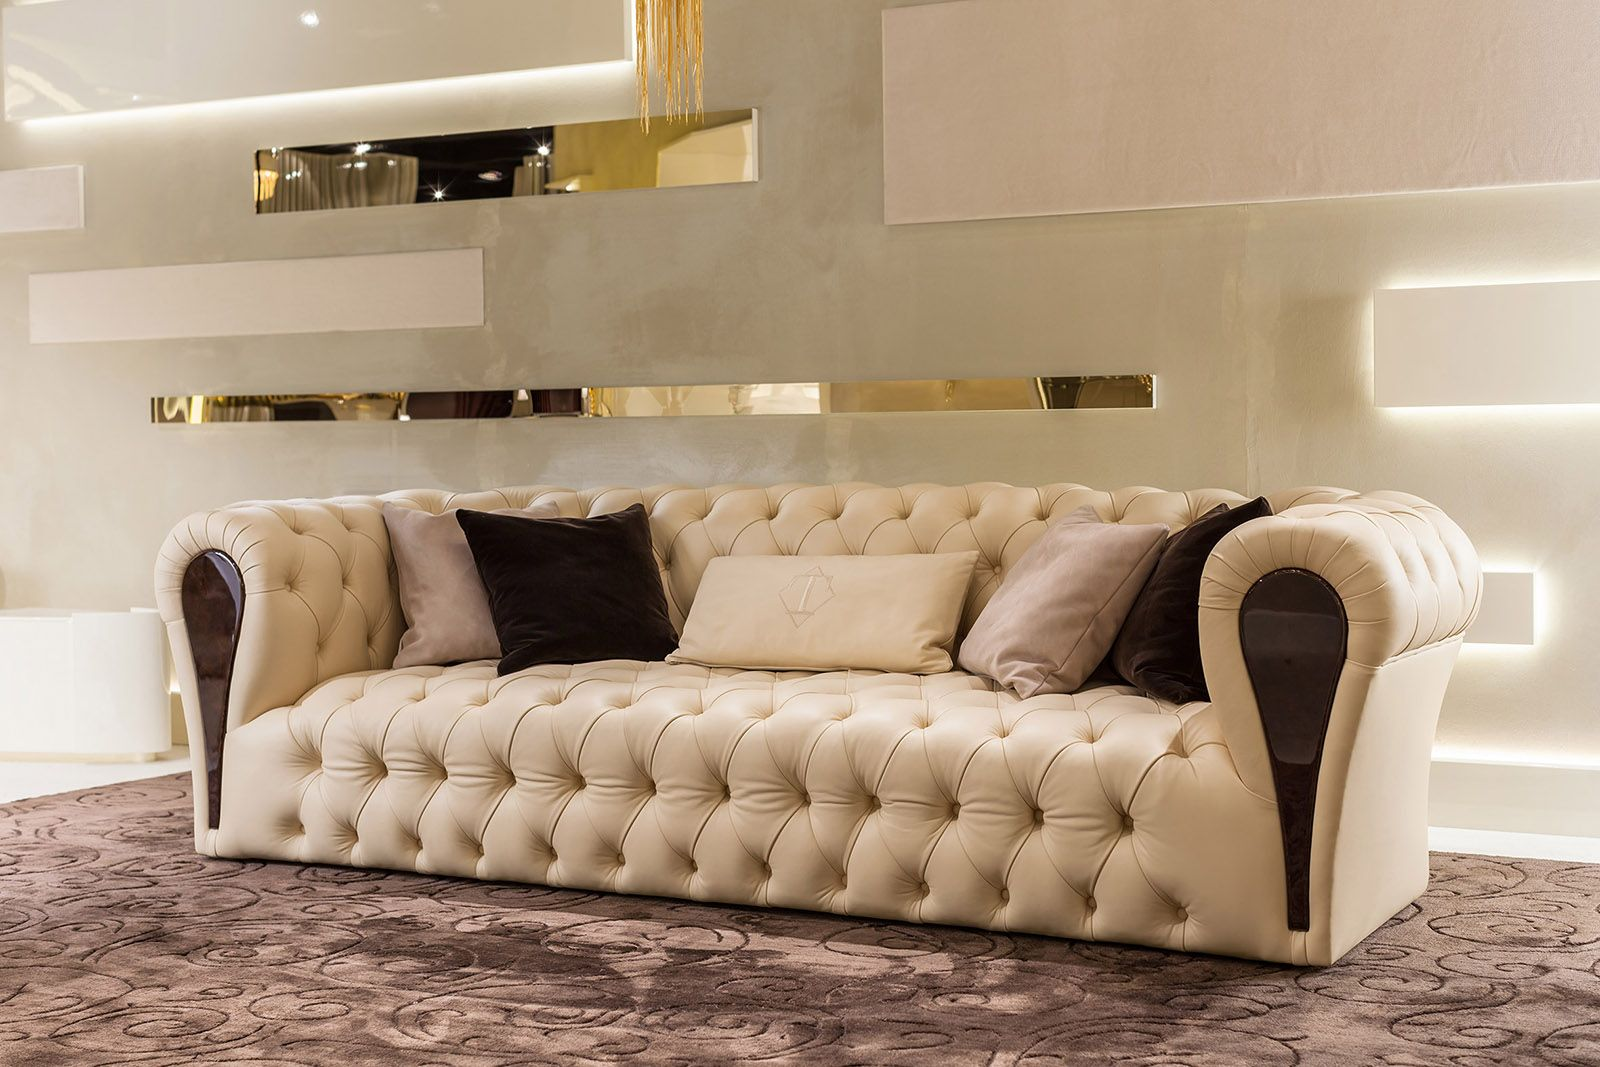 Italian Sofa Chairs Italian Furniture For Exclusive And Modern Design 品牌